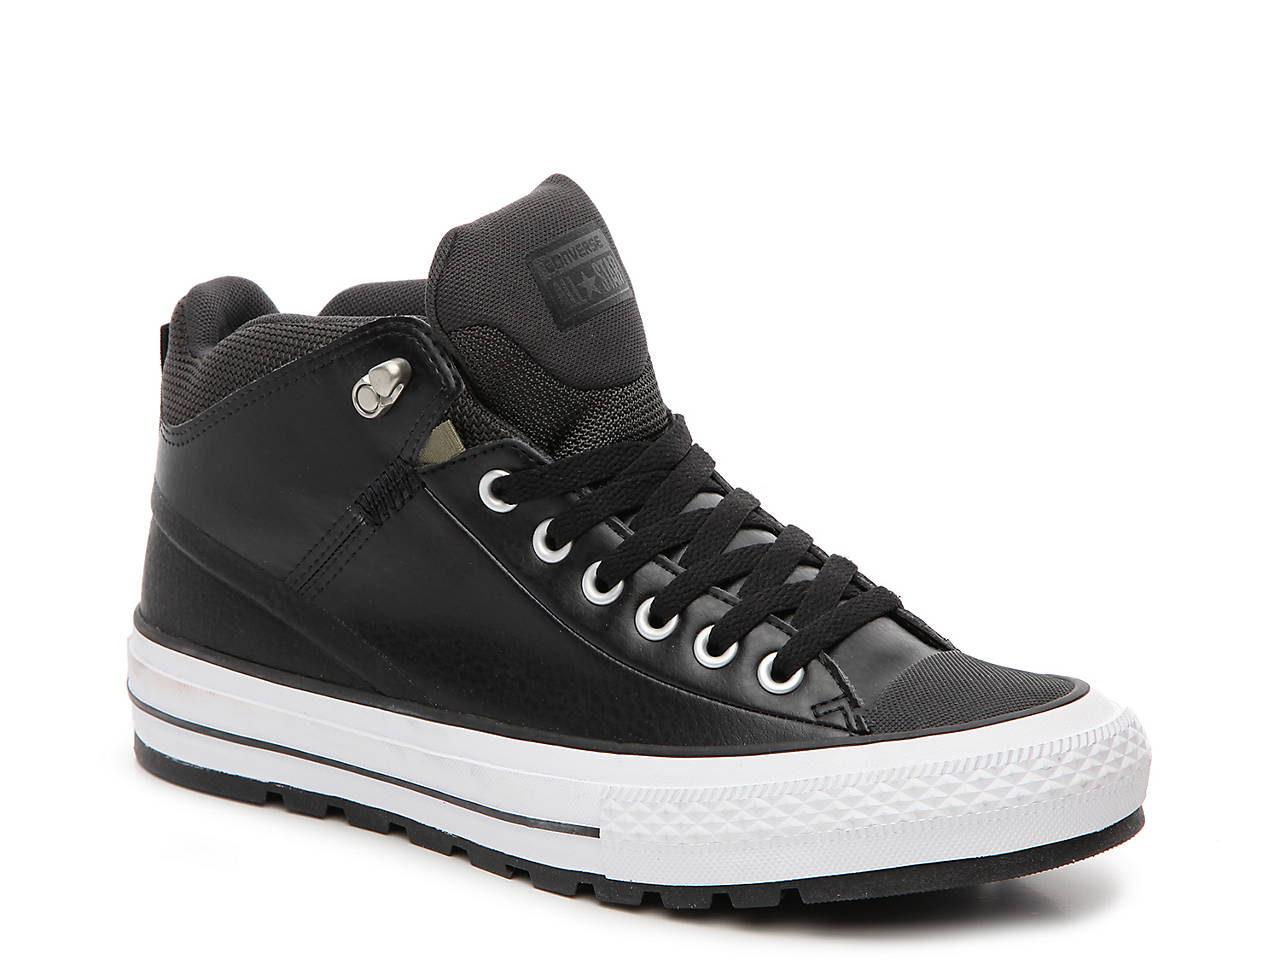 06849e596885 Converse Chuck Taylor All Star Hi Street High-Top Sneaker Boot ...